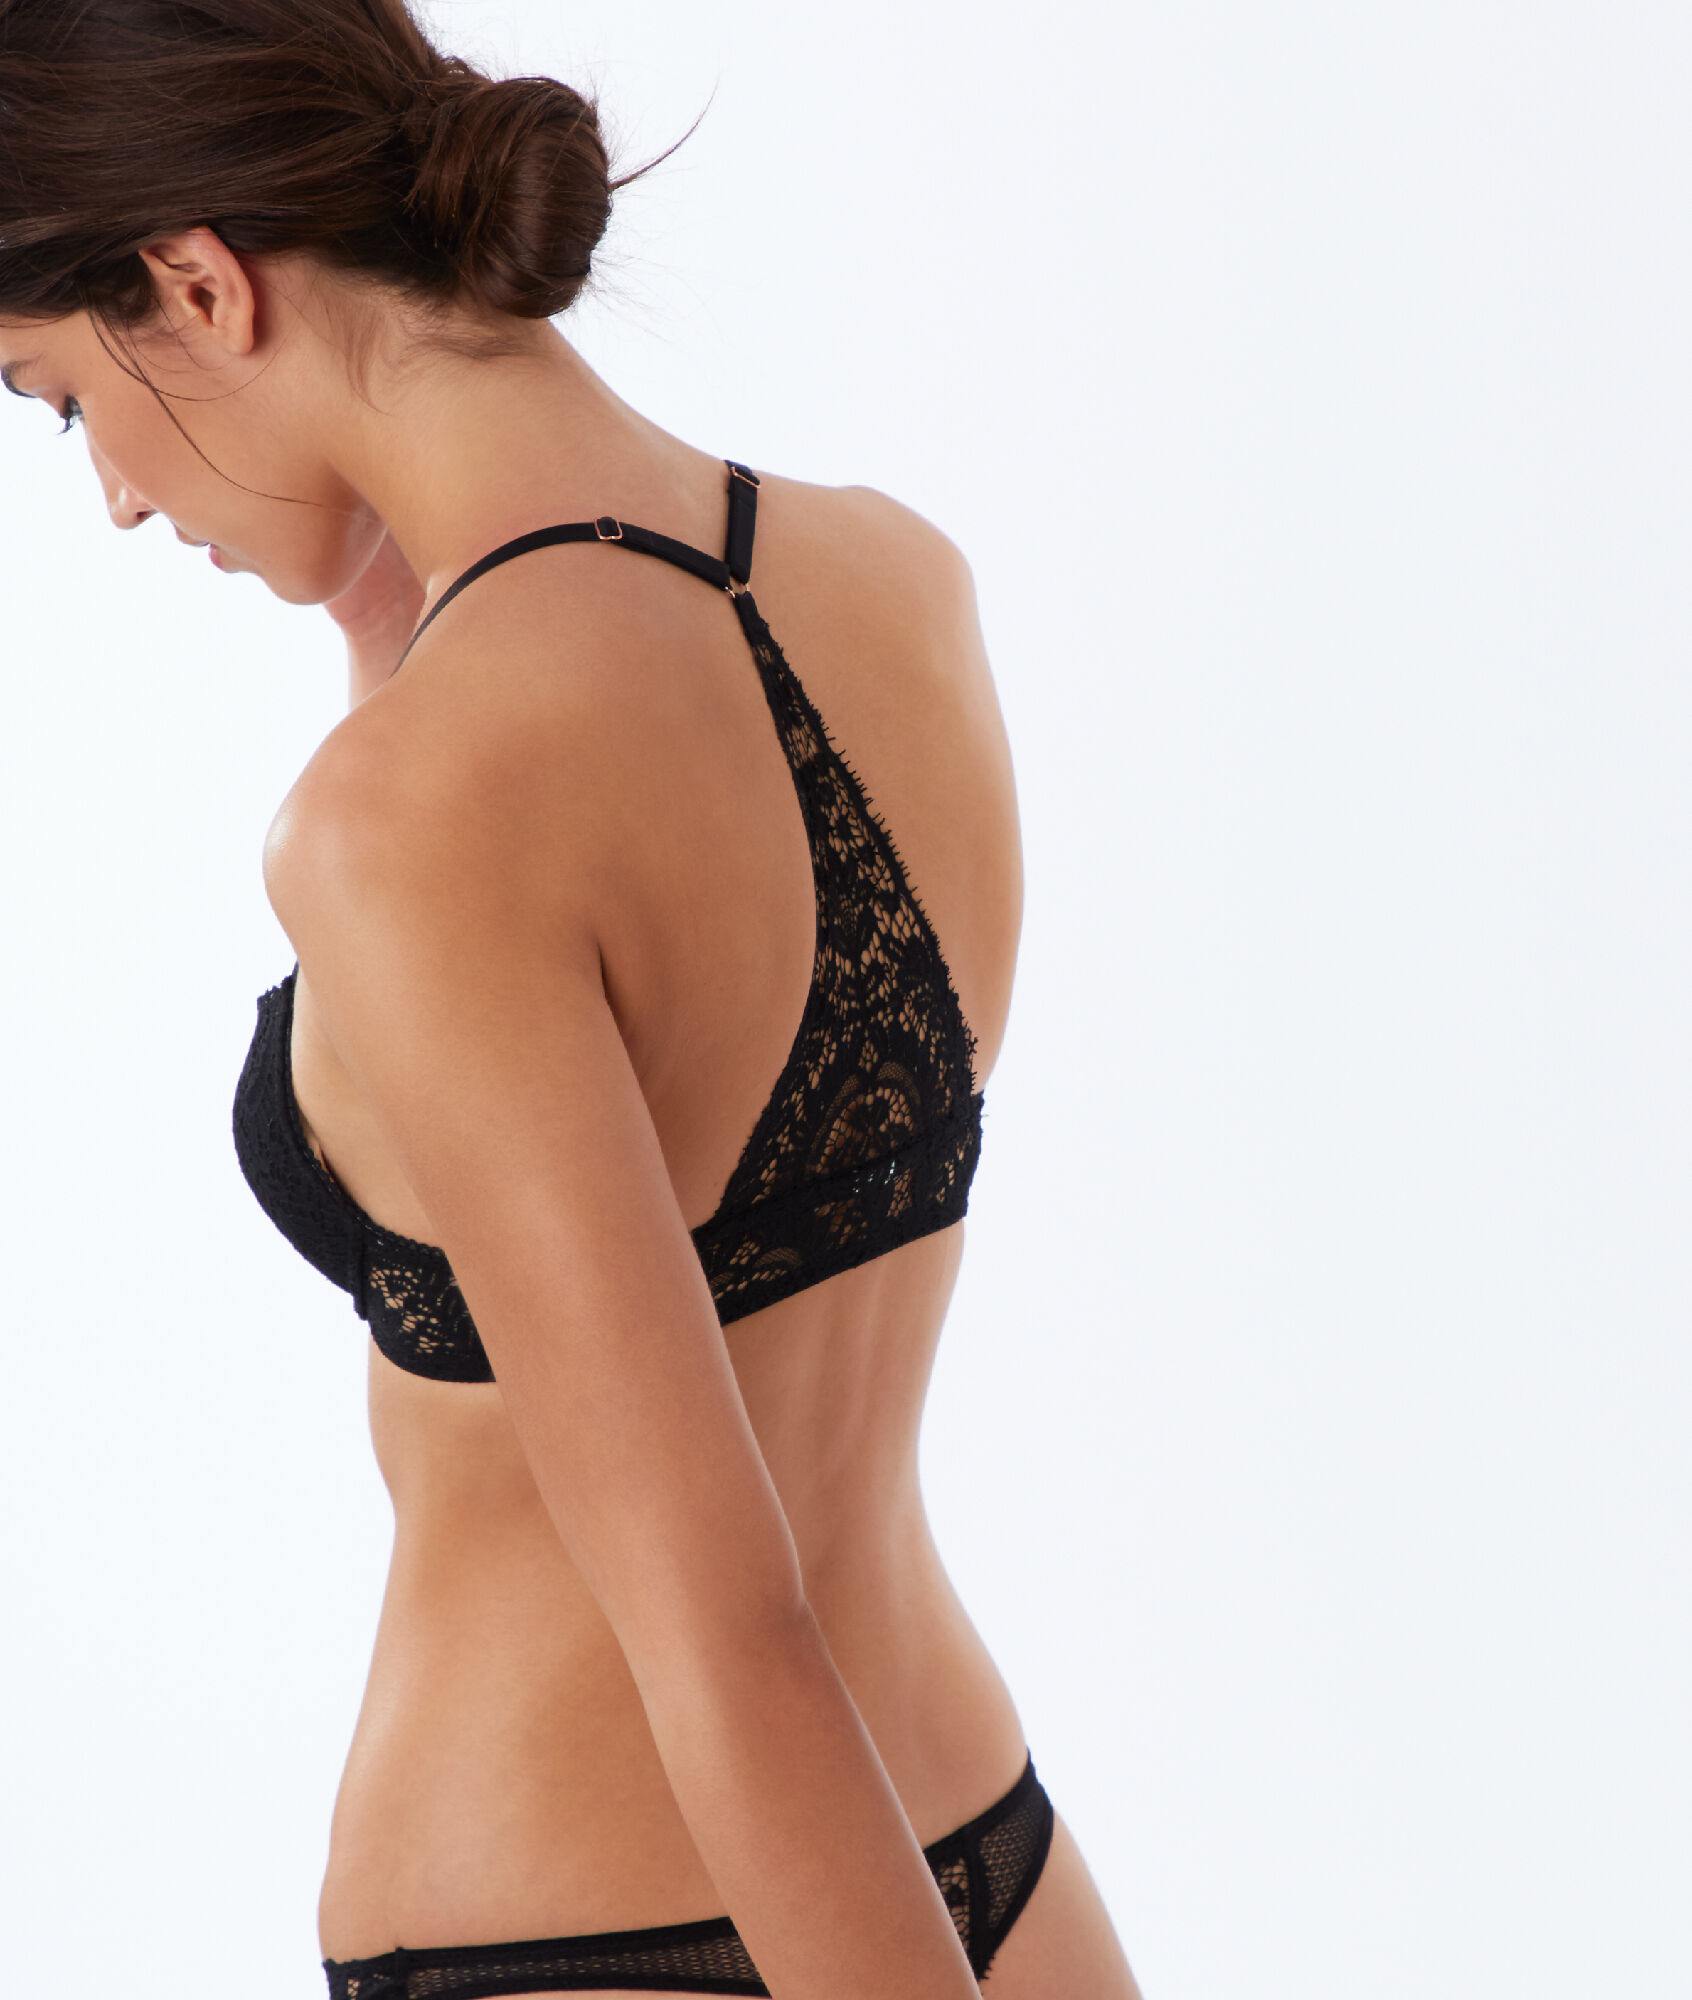 52fd5bea140a9 Bra no. 2 - lace plunging push-up